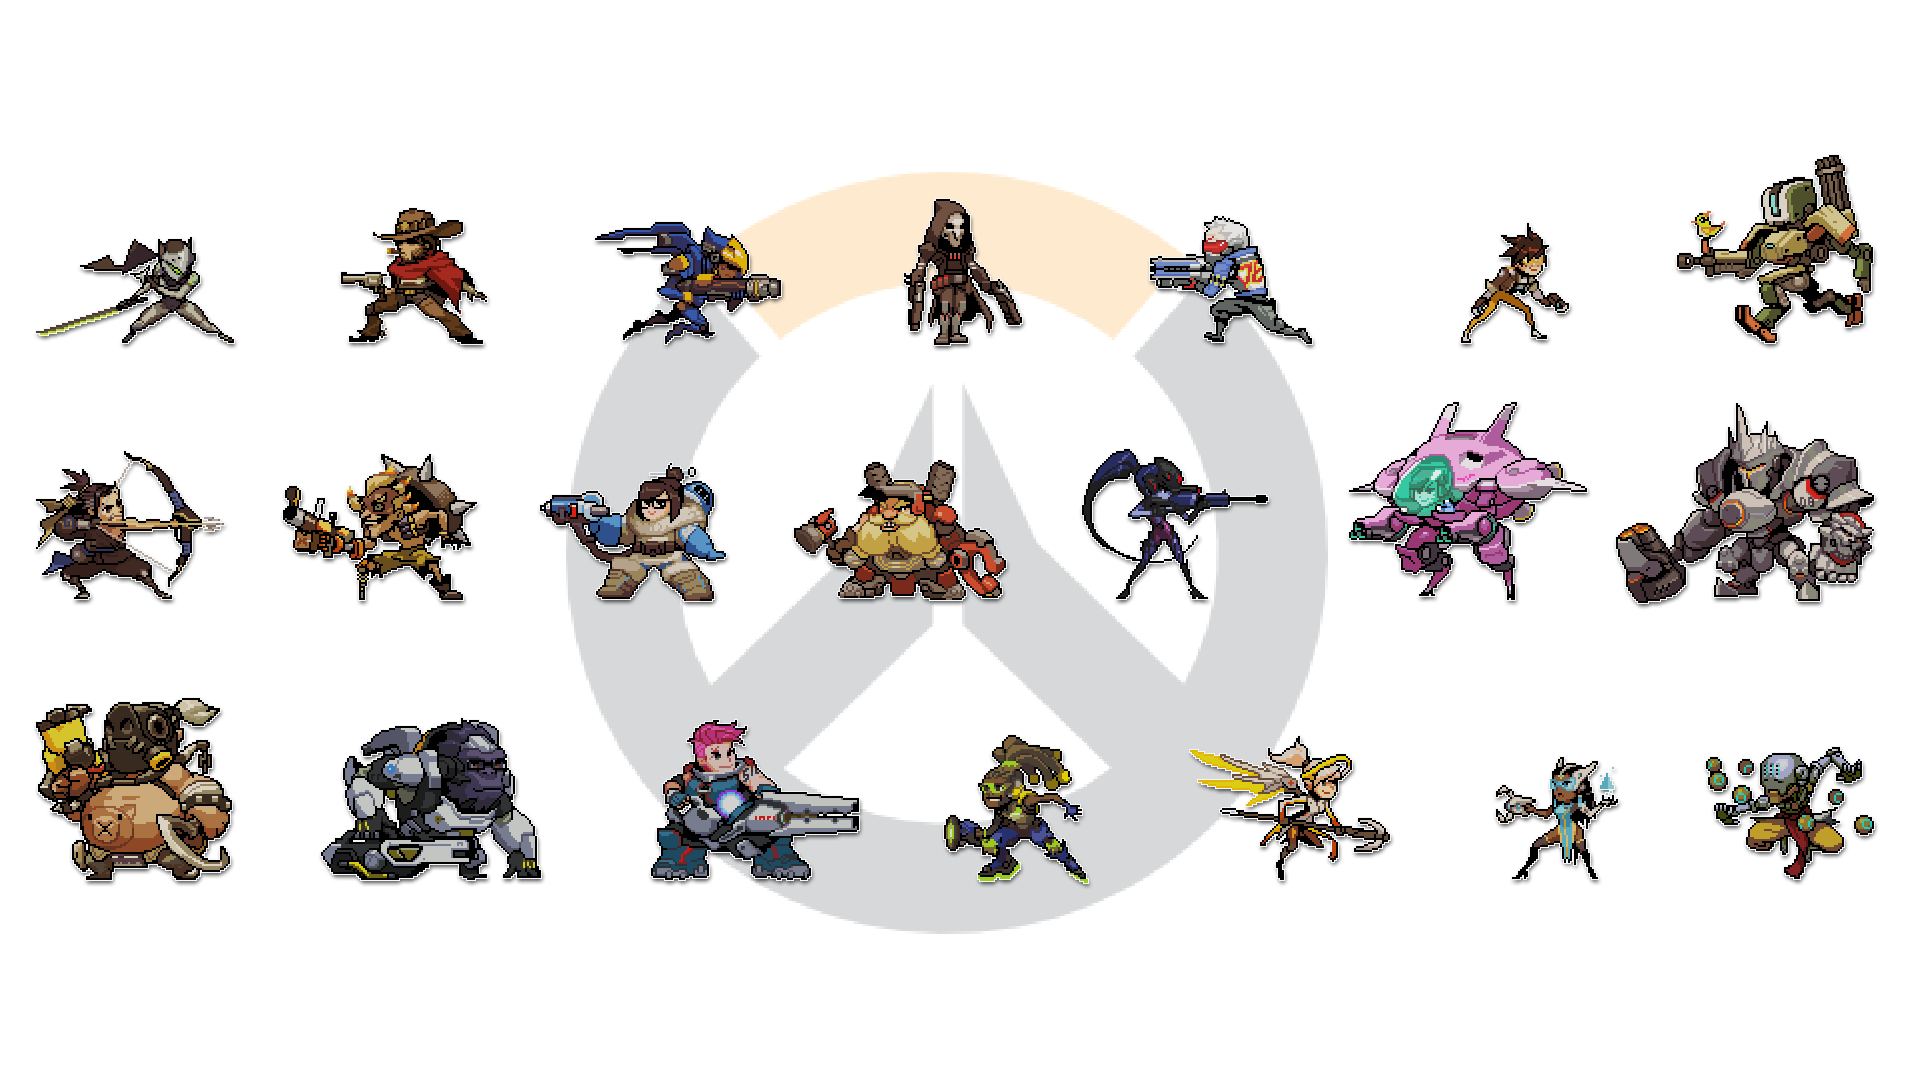 Overwatch clipart 16x16 picture royalty free Overwatch clipart 16x16 - ClipartFest picture royalty free